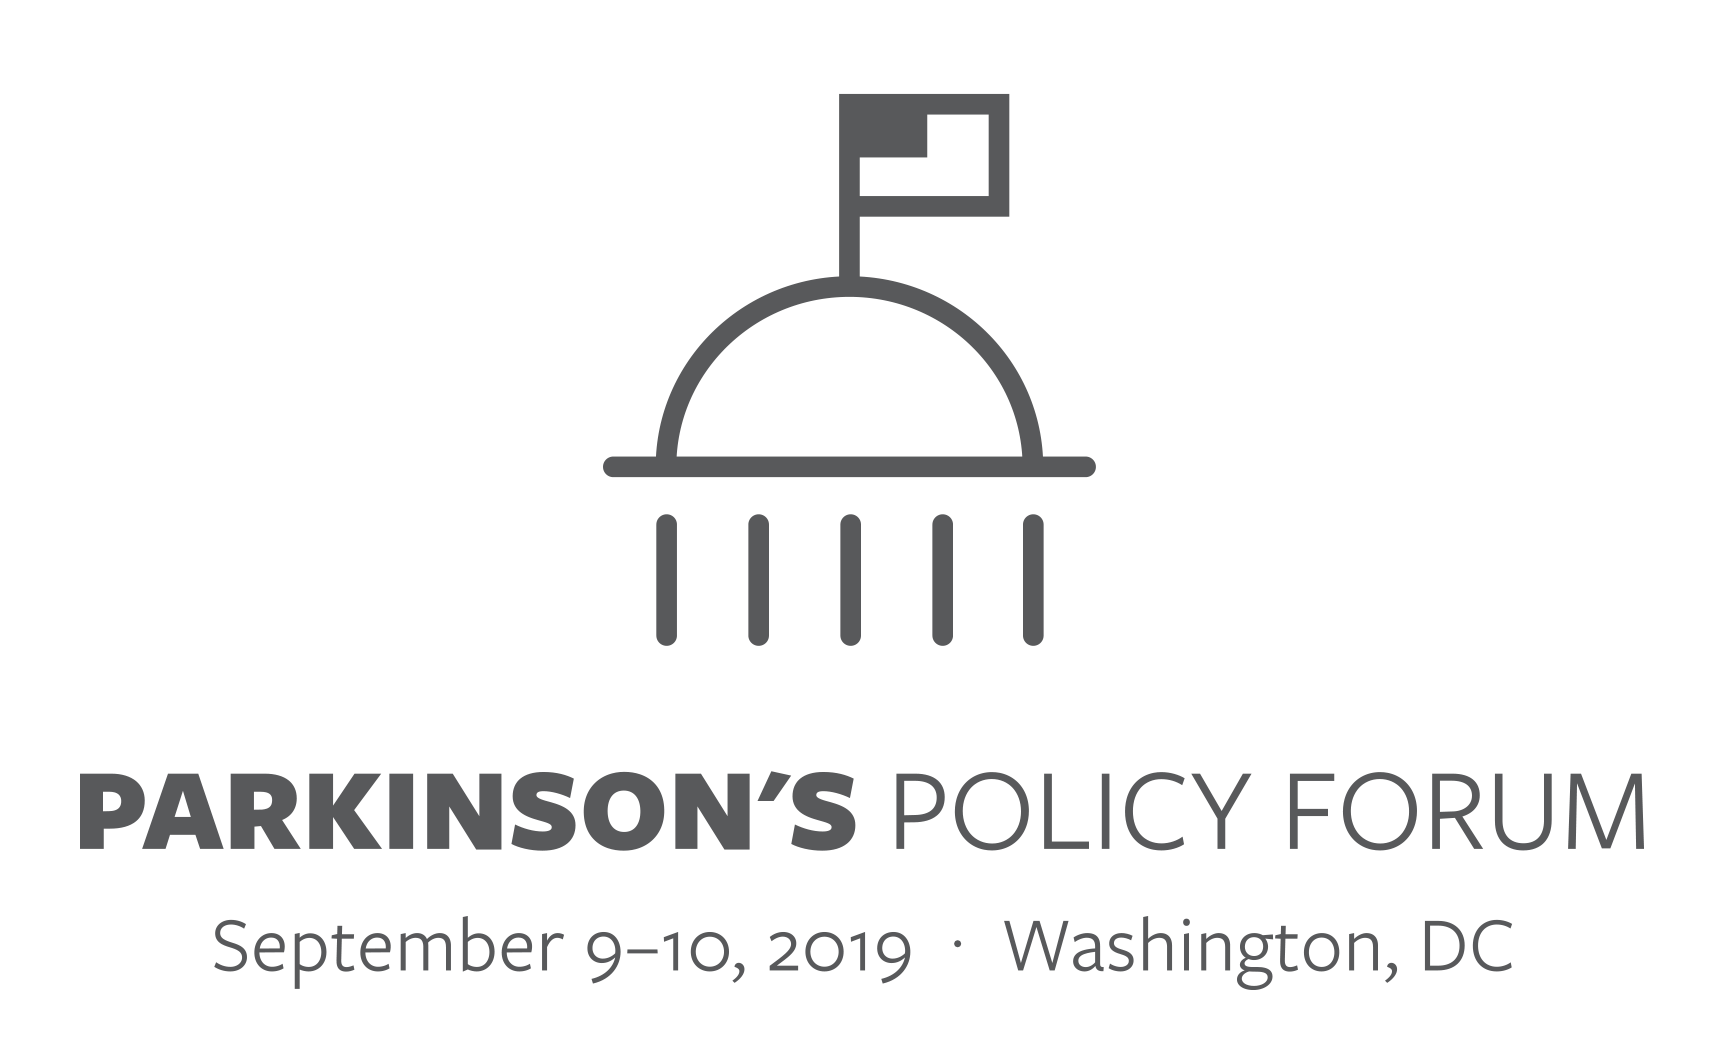 2019 Parkinson's Policy Forum